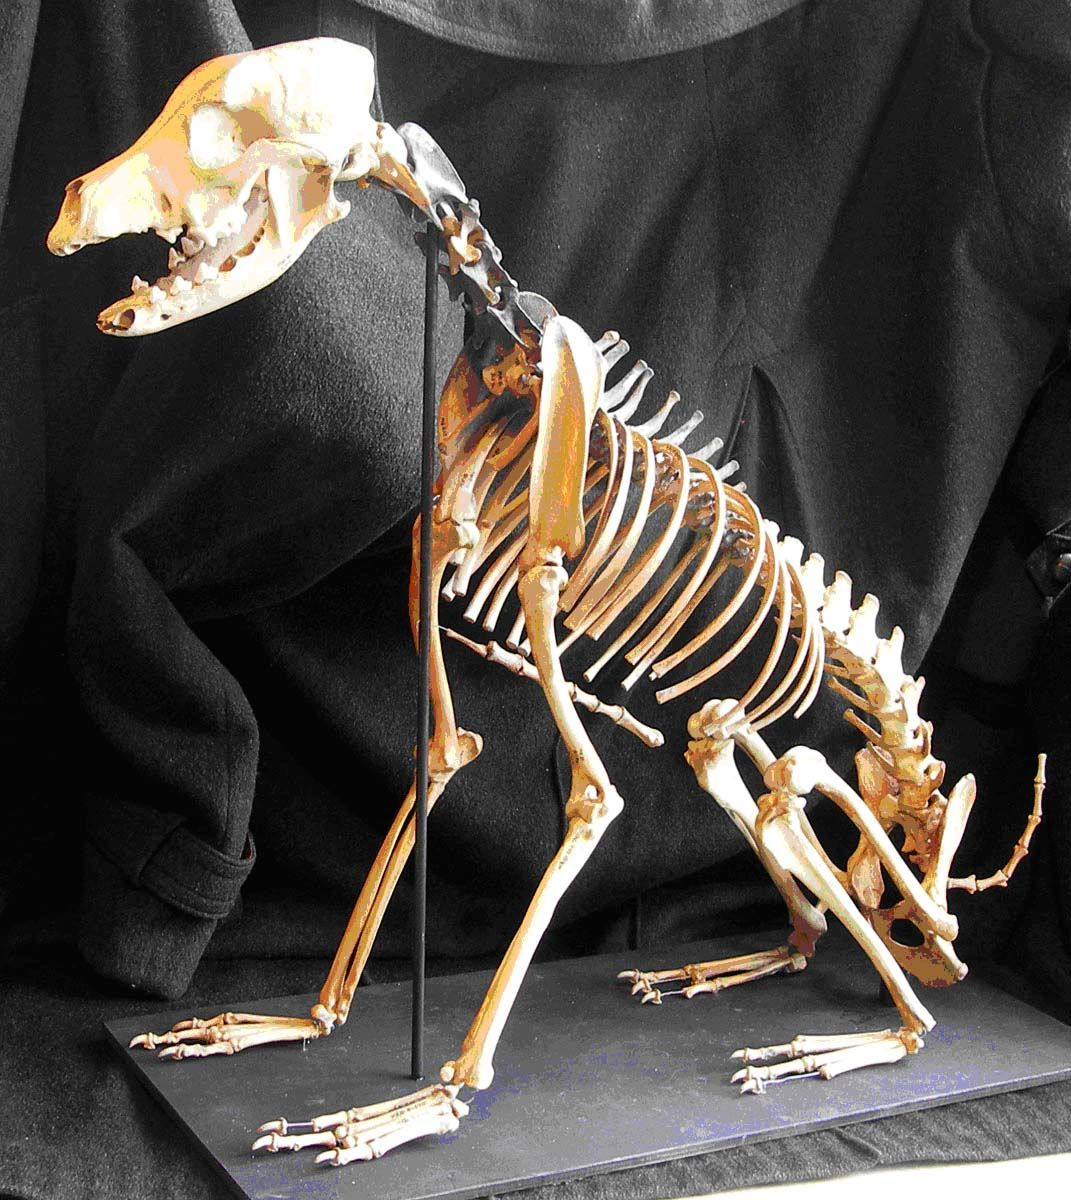 This is the muchrenowned dog skeleton recovered in pieces